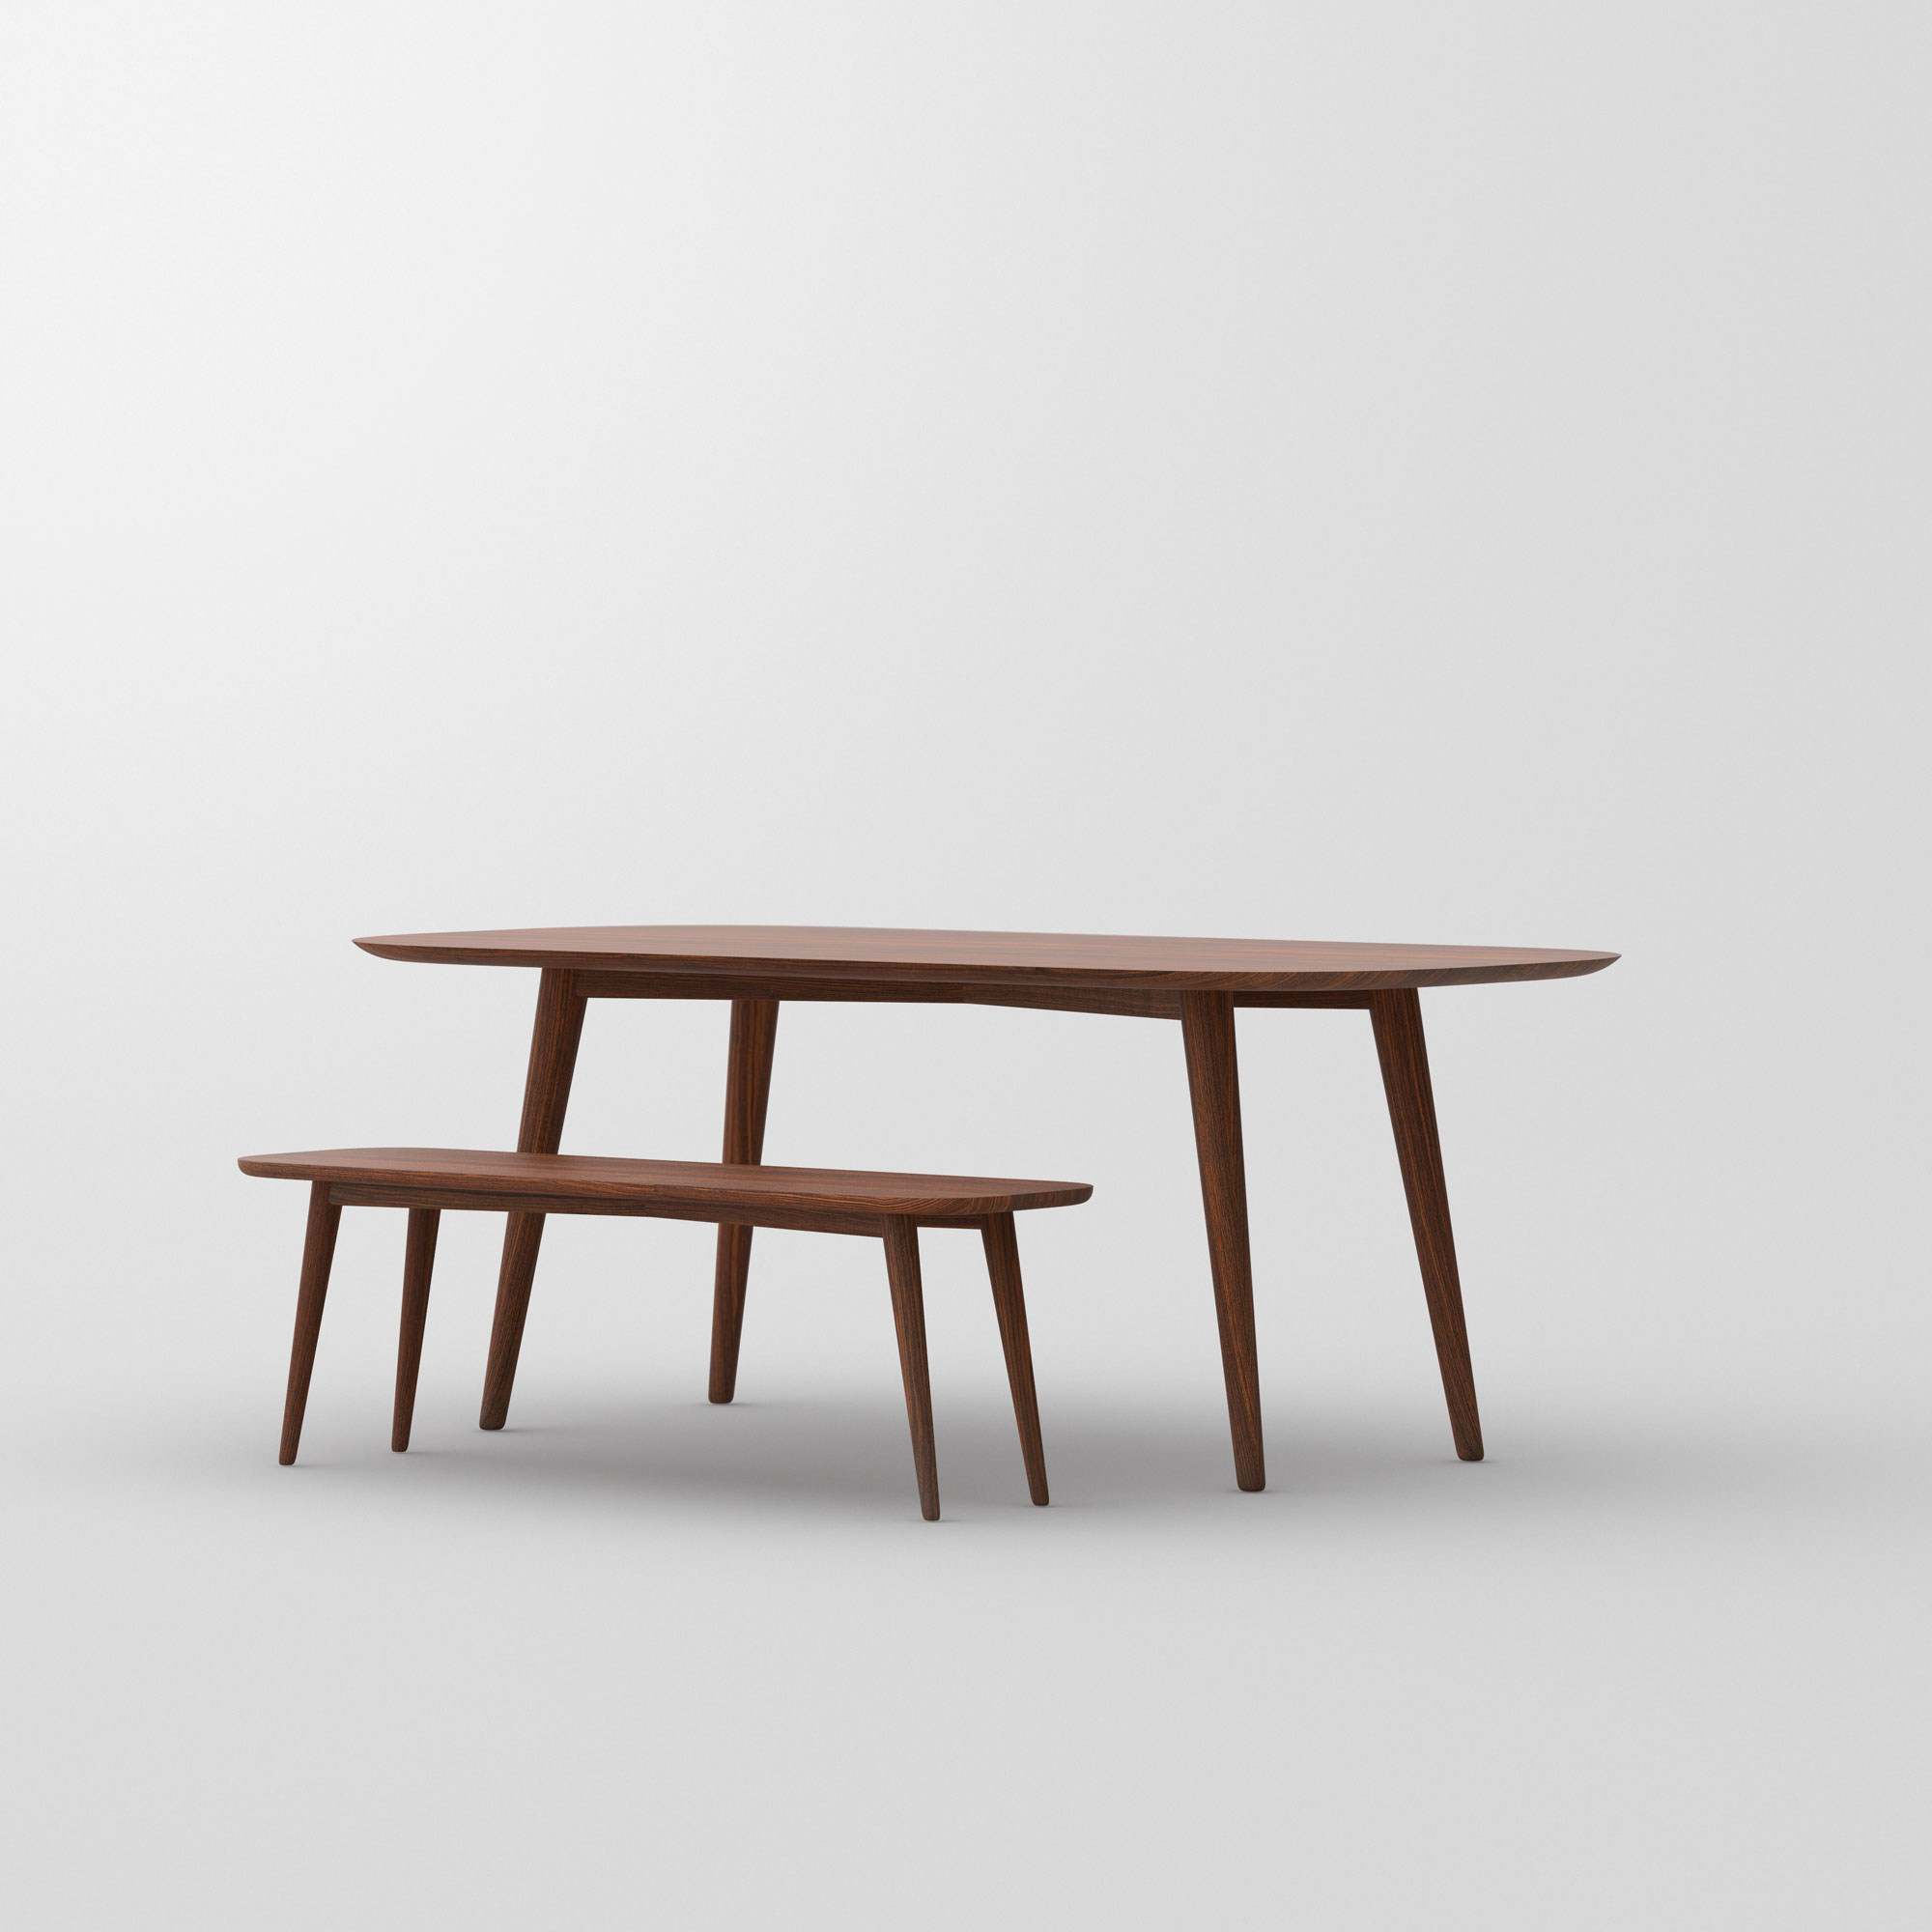 Oval Dining Table AMBIO vitamin-design custom made in solid wood by vitamin design